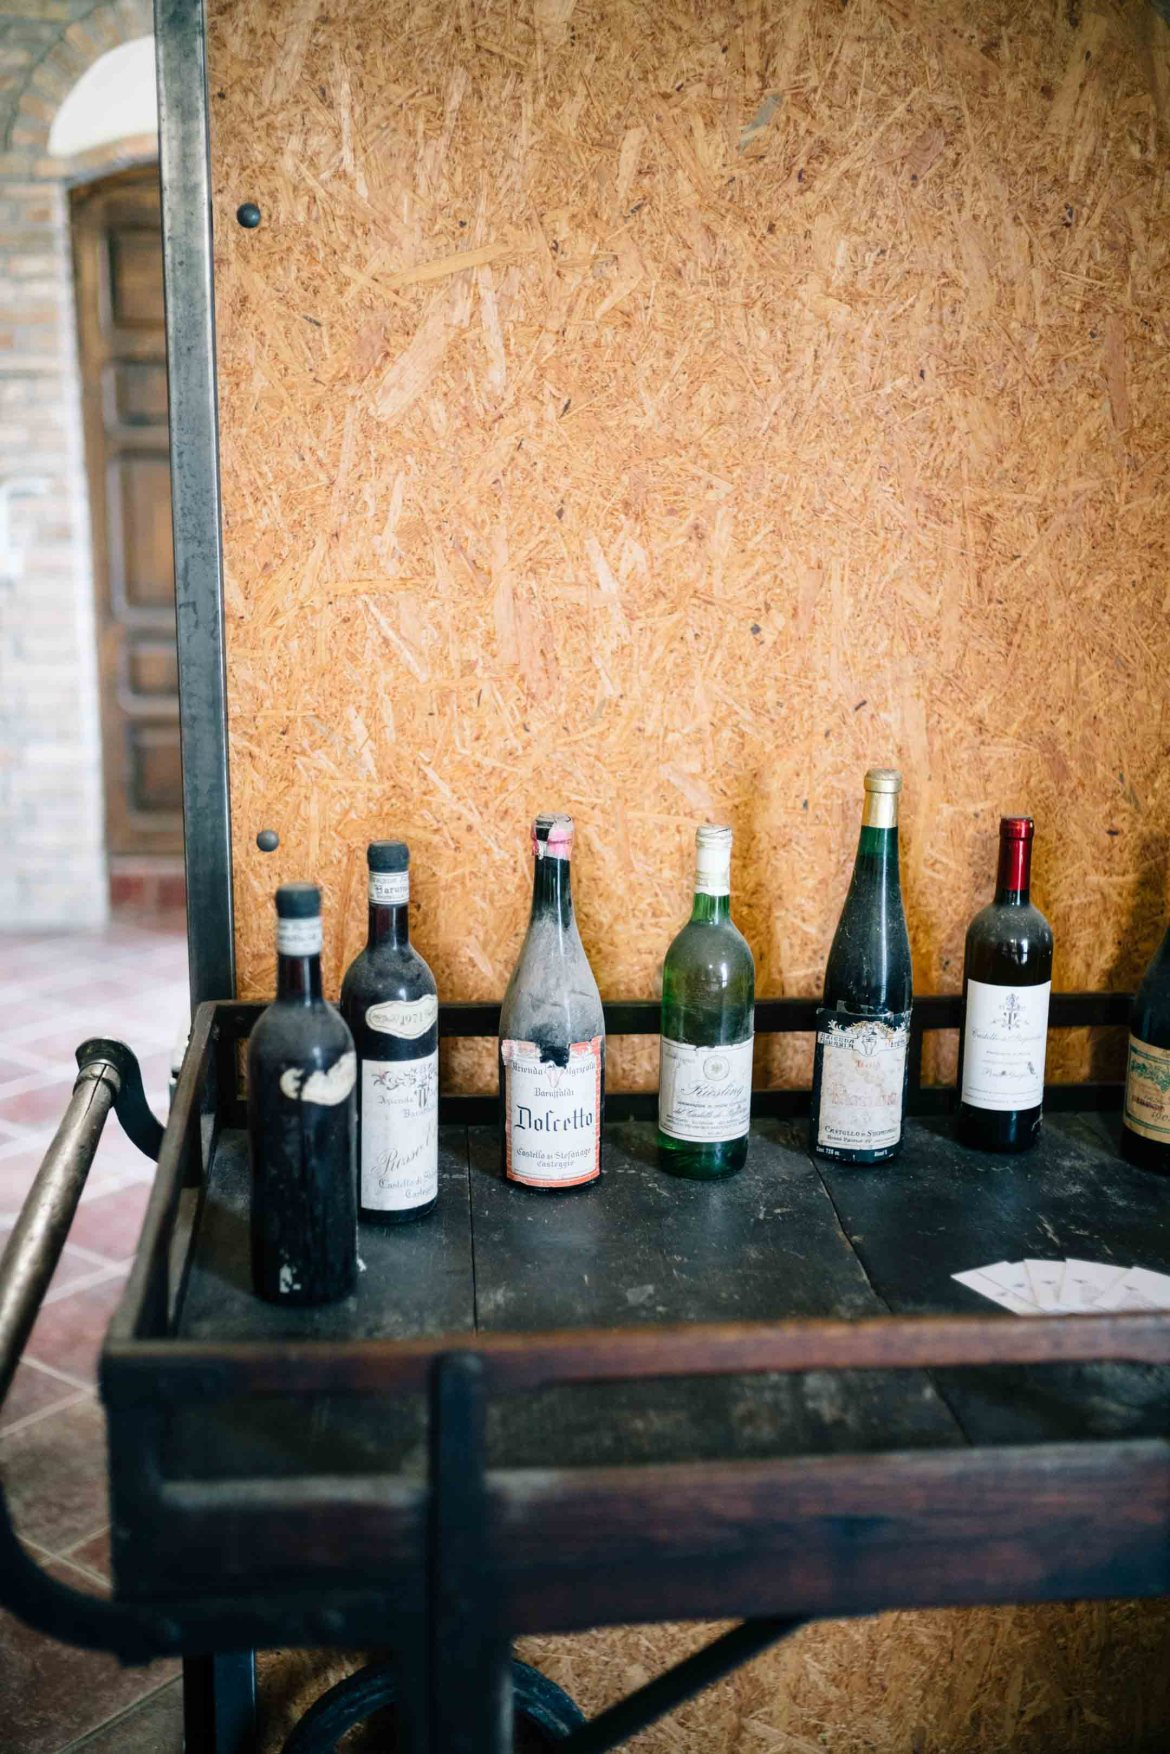 The Taste Edit, culinary photographers, recommends visiting this magical winery in northern Italy. Castello di Stefanago is near the town of Pavia in Lombardy. Winemaker and owner Giacomo Baruffaldi gives us a tour of the winery where they make Baruffaldi natural wines. A variety of wines.